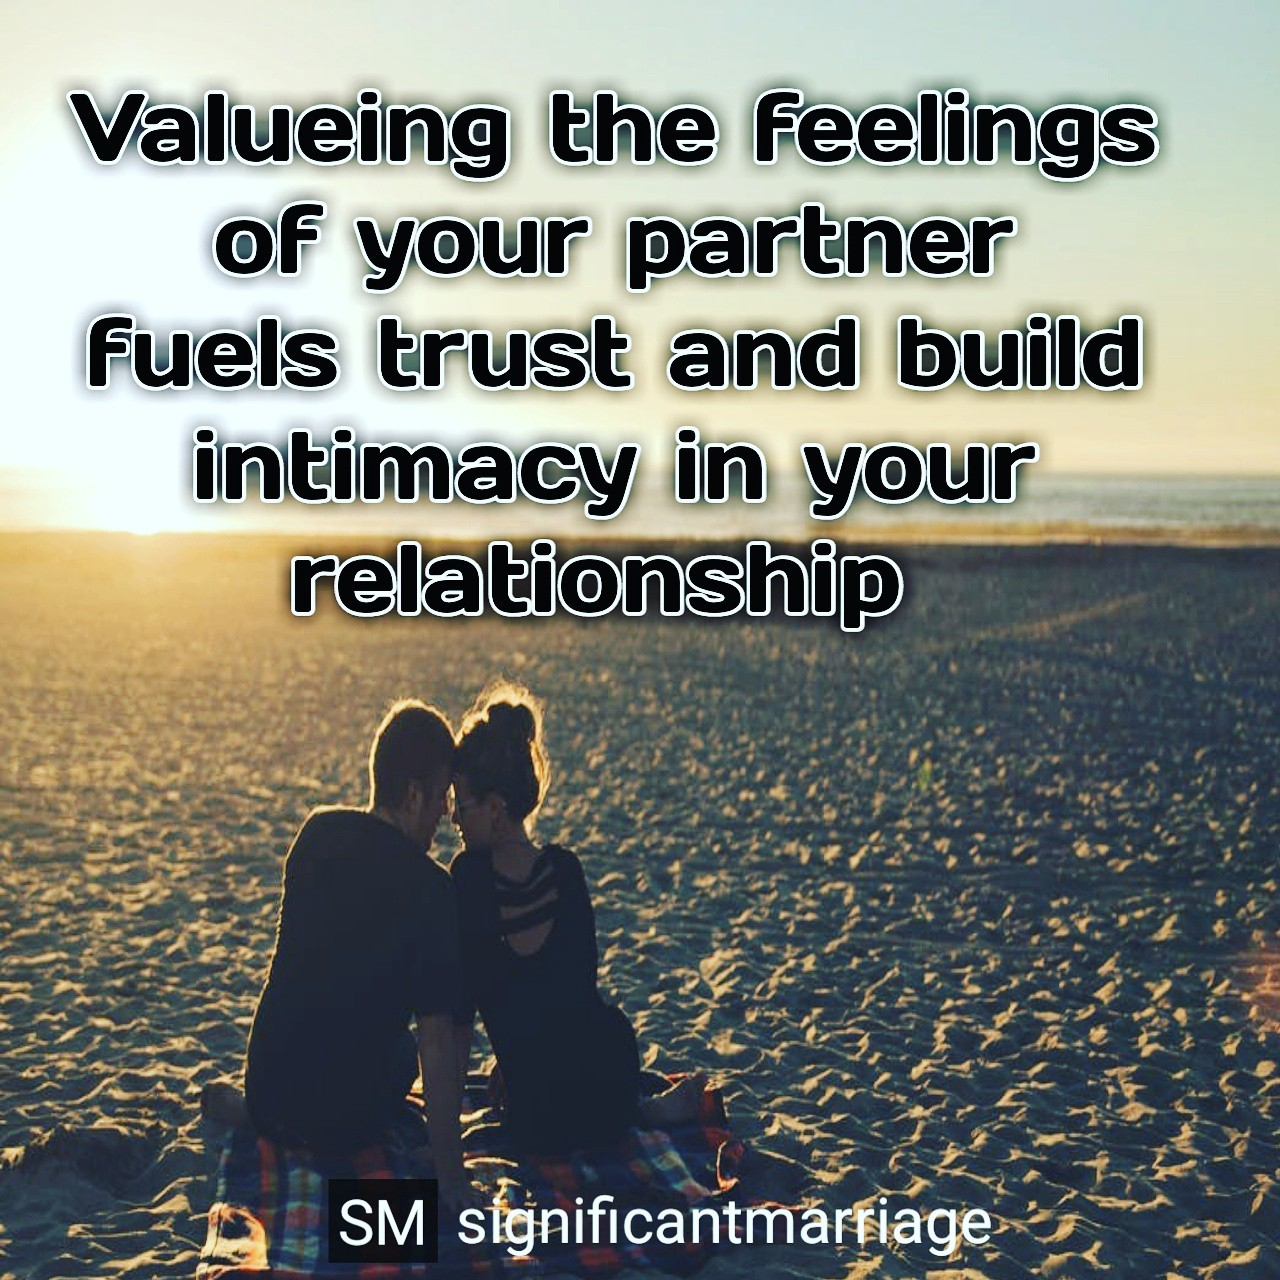 Value the feelings of your spouse  - Significant marriage